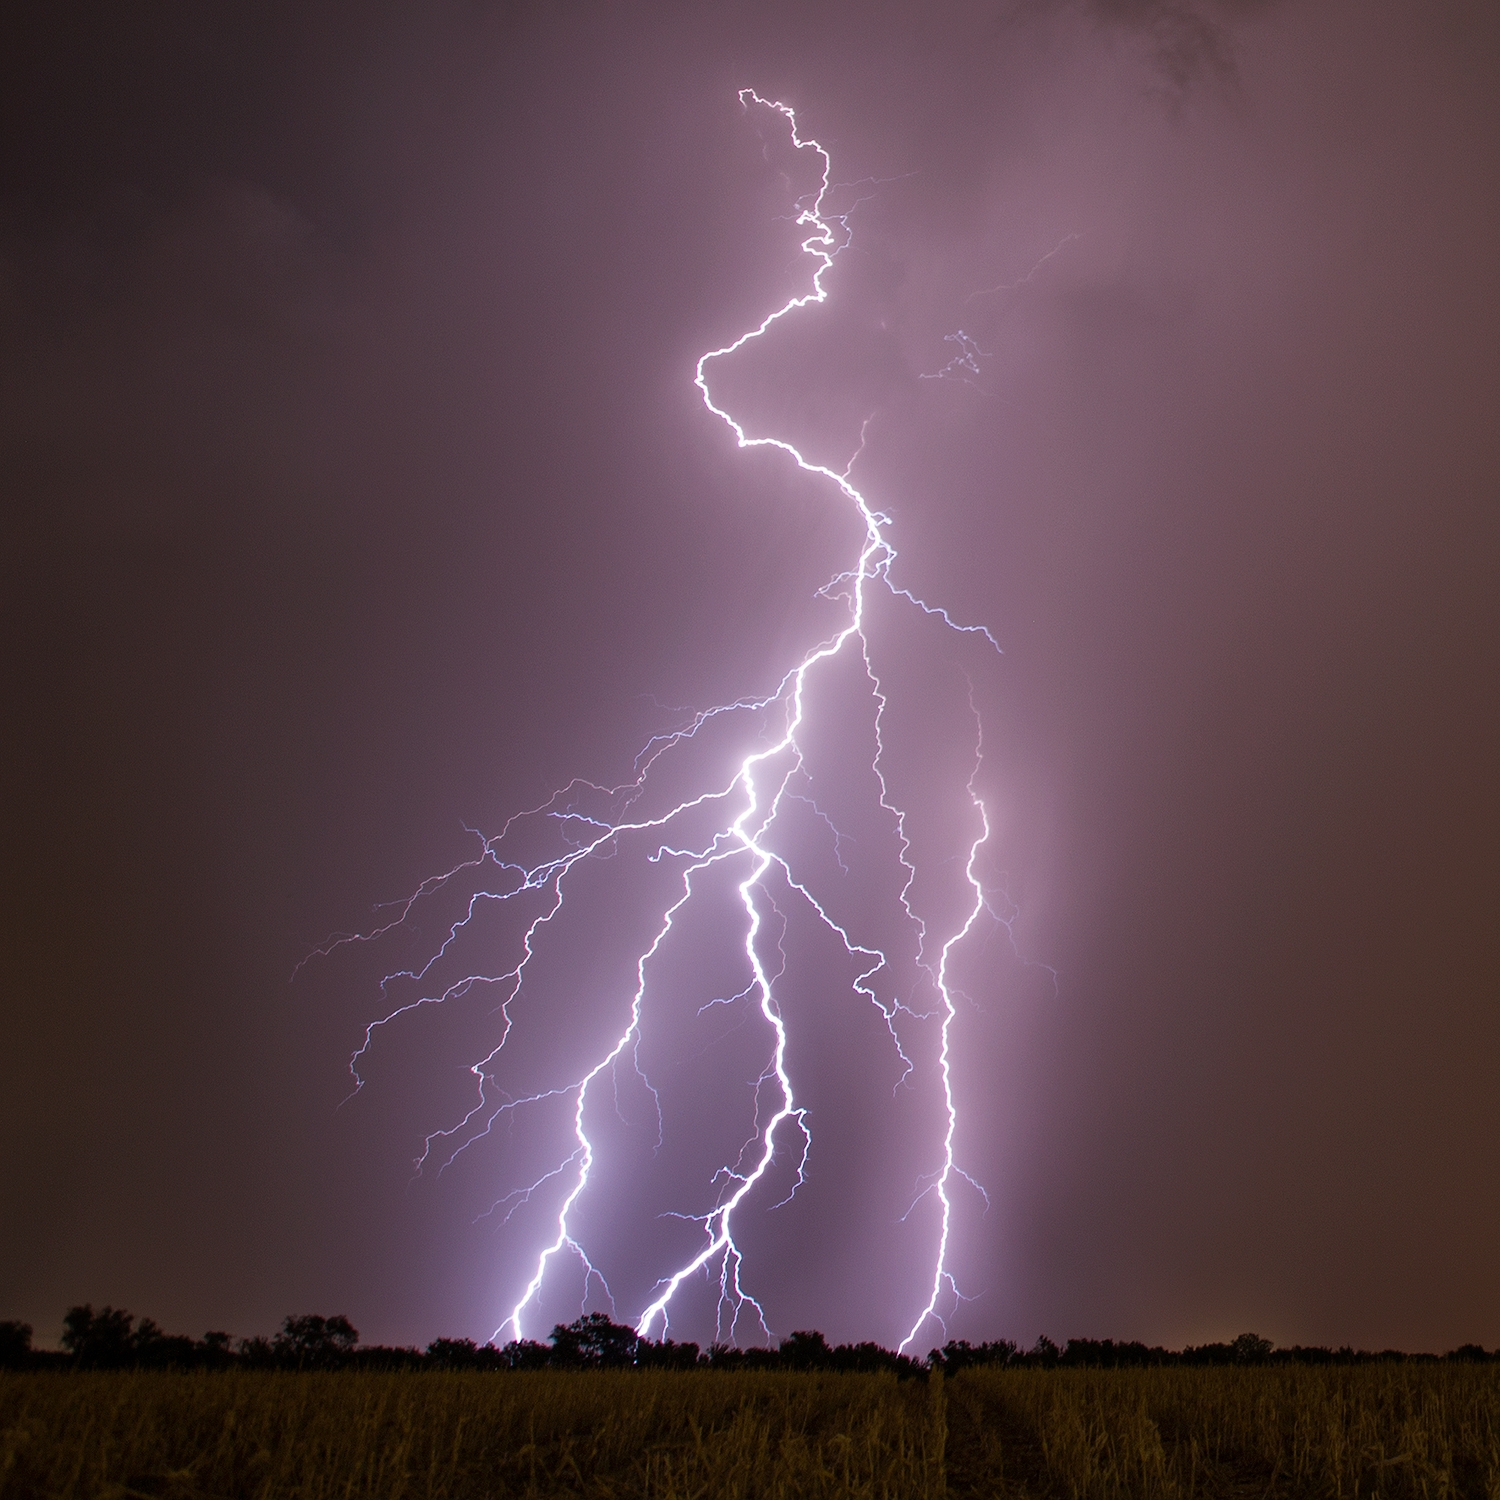 lightning-portrait-1-IG.jpg